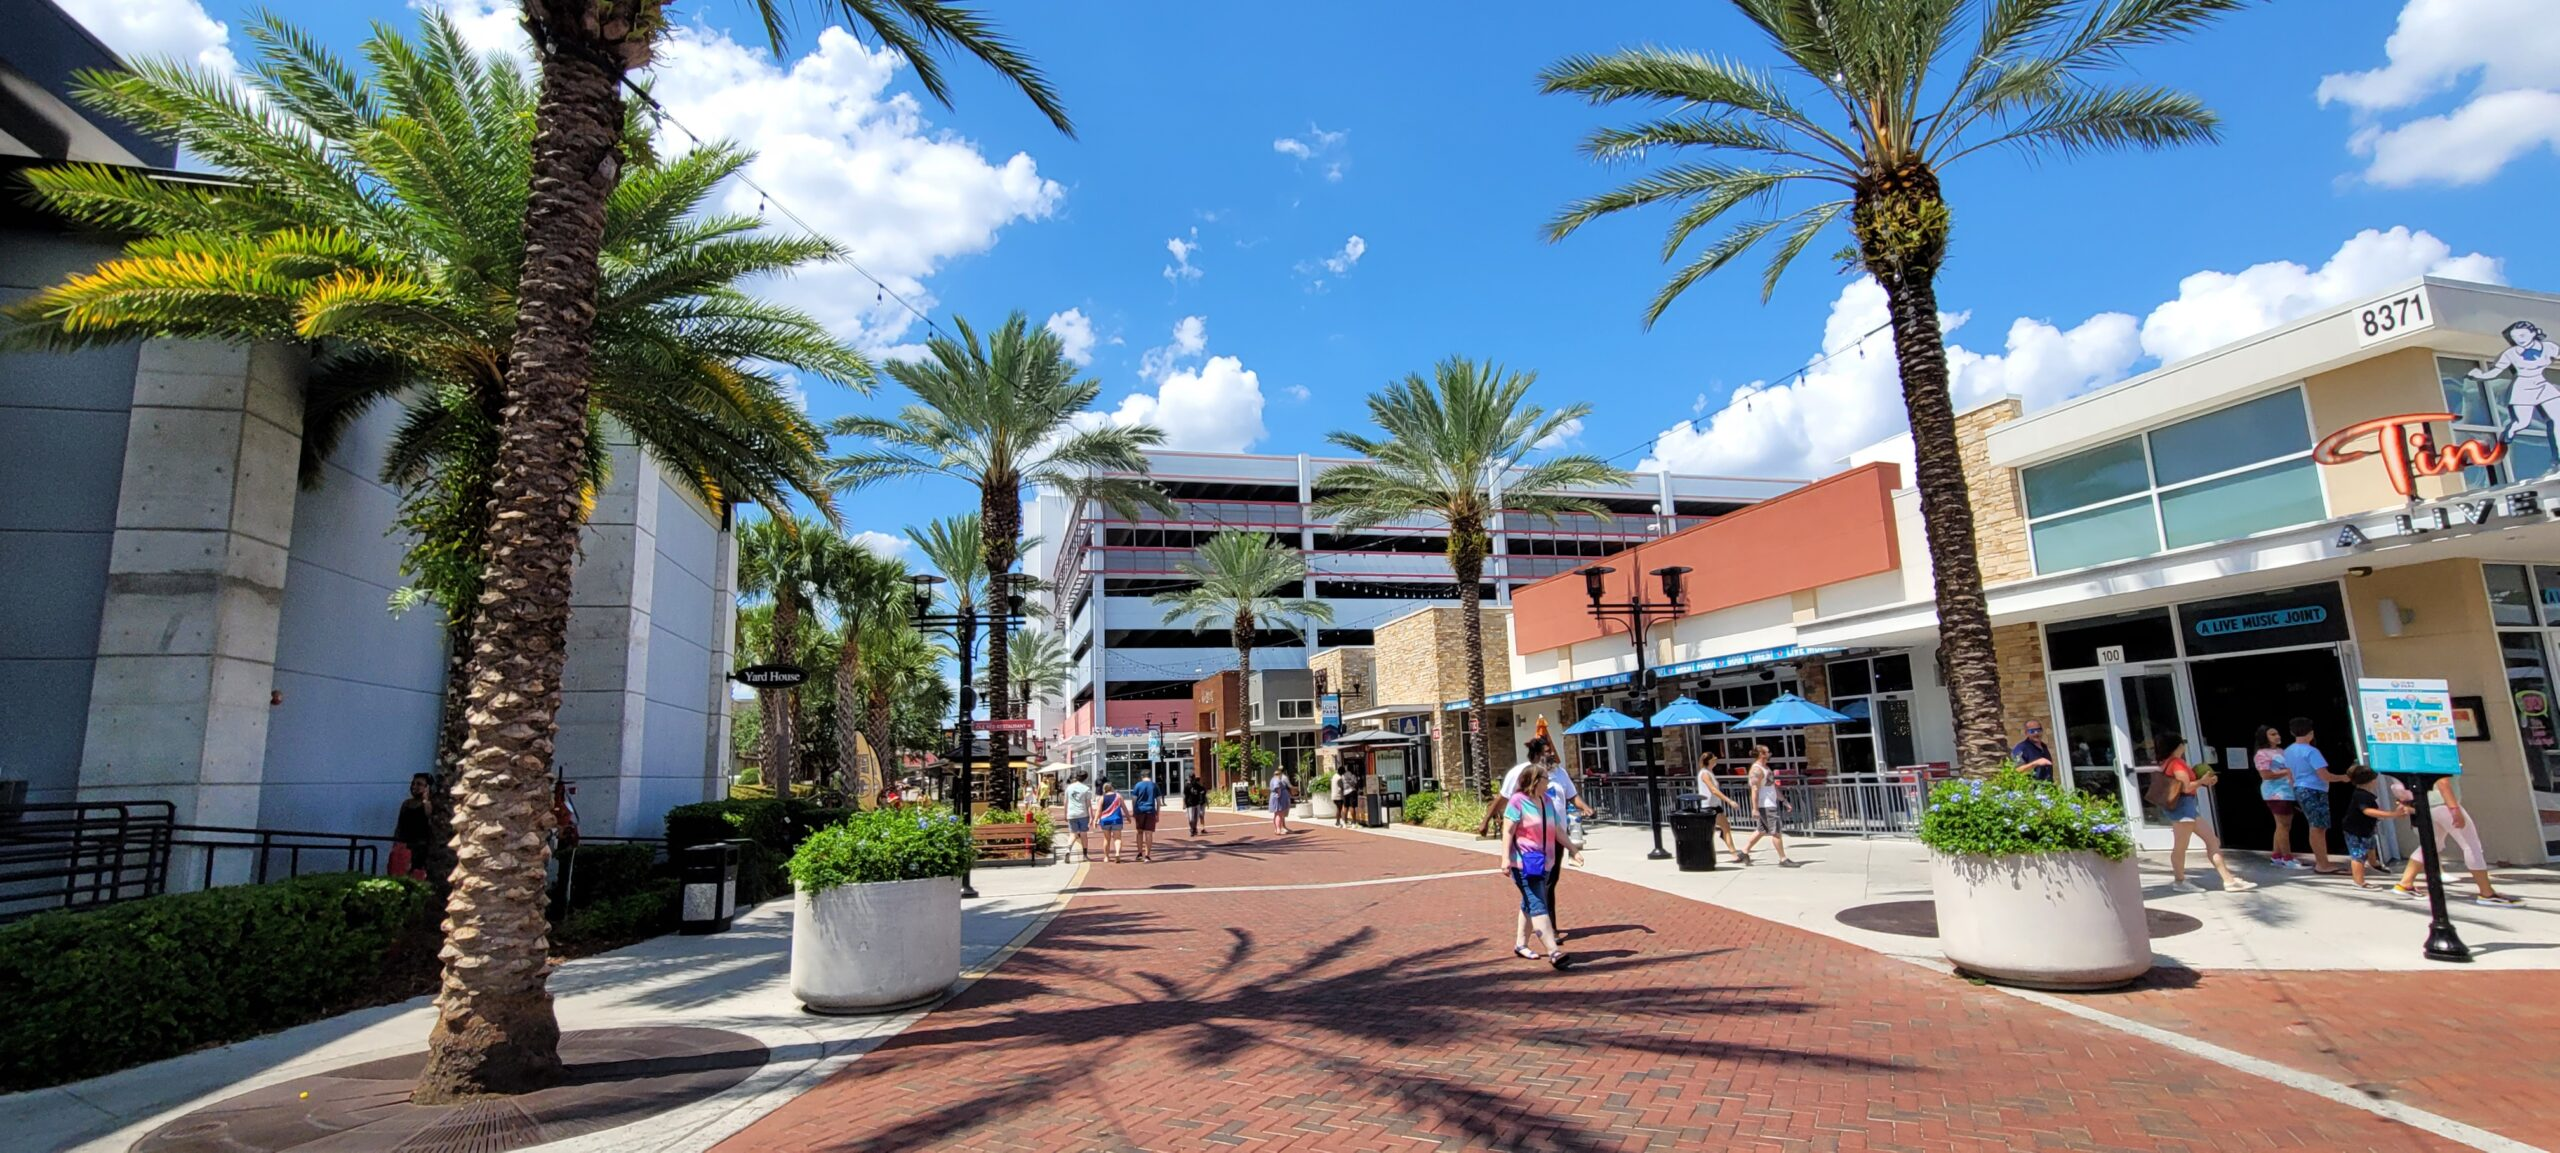 Have a family fun day at ICON Park in Orlando 2